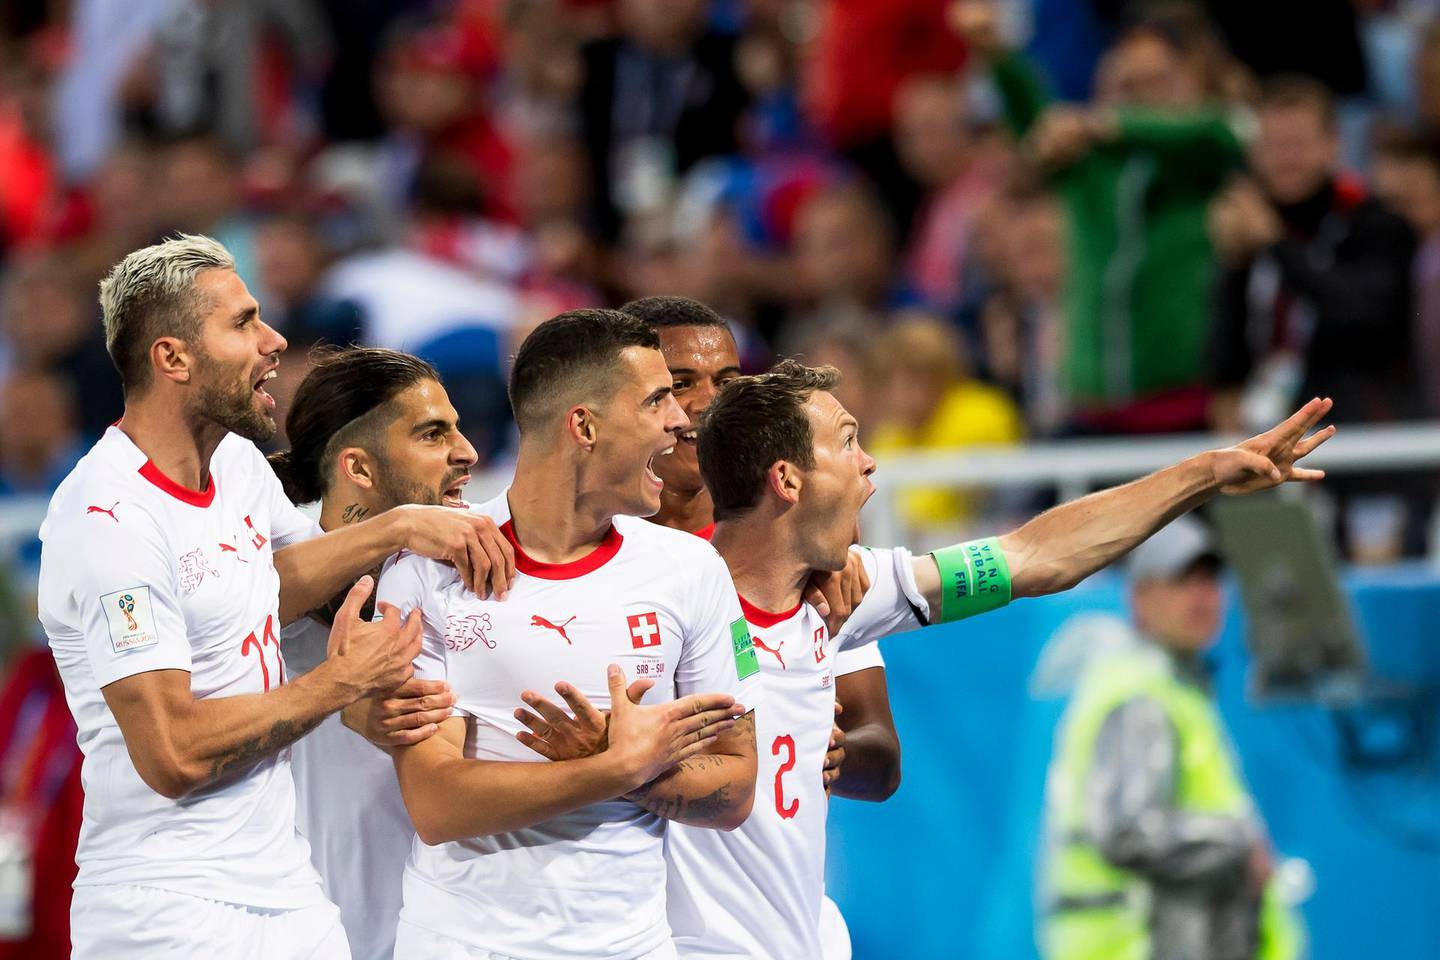 epa06831890 Switzerland's midfielder Granit Xhaka (C) celebrates with his teammates after scoring the 1-1 equalizer during the FIFA World Cup 2018 group E preliminary round soccer match between Switzerland and Serbia in Kaliningrad, Russia, 22 June 2018.   (RESTRICTIONS APPLY: Editorial Use Only, not used in association with any commercial entity - Images must not be used in any form of alert service or push service of any kind including via mobile alert services, downloads to mobile devices or MMS messaging - Images must appear as still images and must not emulate match action video footage - No alteration is made to, and no text or image is superimposed over, any published image which: (a) intentionally obscures or removes a sponsor identification image; or (b) adds or overlays the commercial identification of any third party which is not officially associated with the FIFA World Cup)  EPA/LAURENT GILLIERON   EDITORIAL USE ONLY